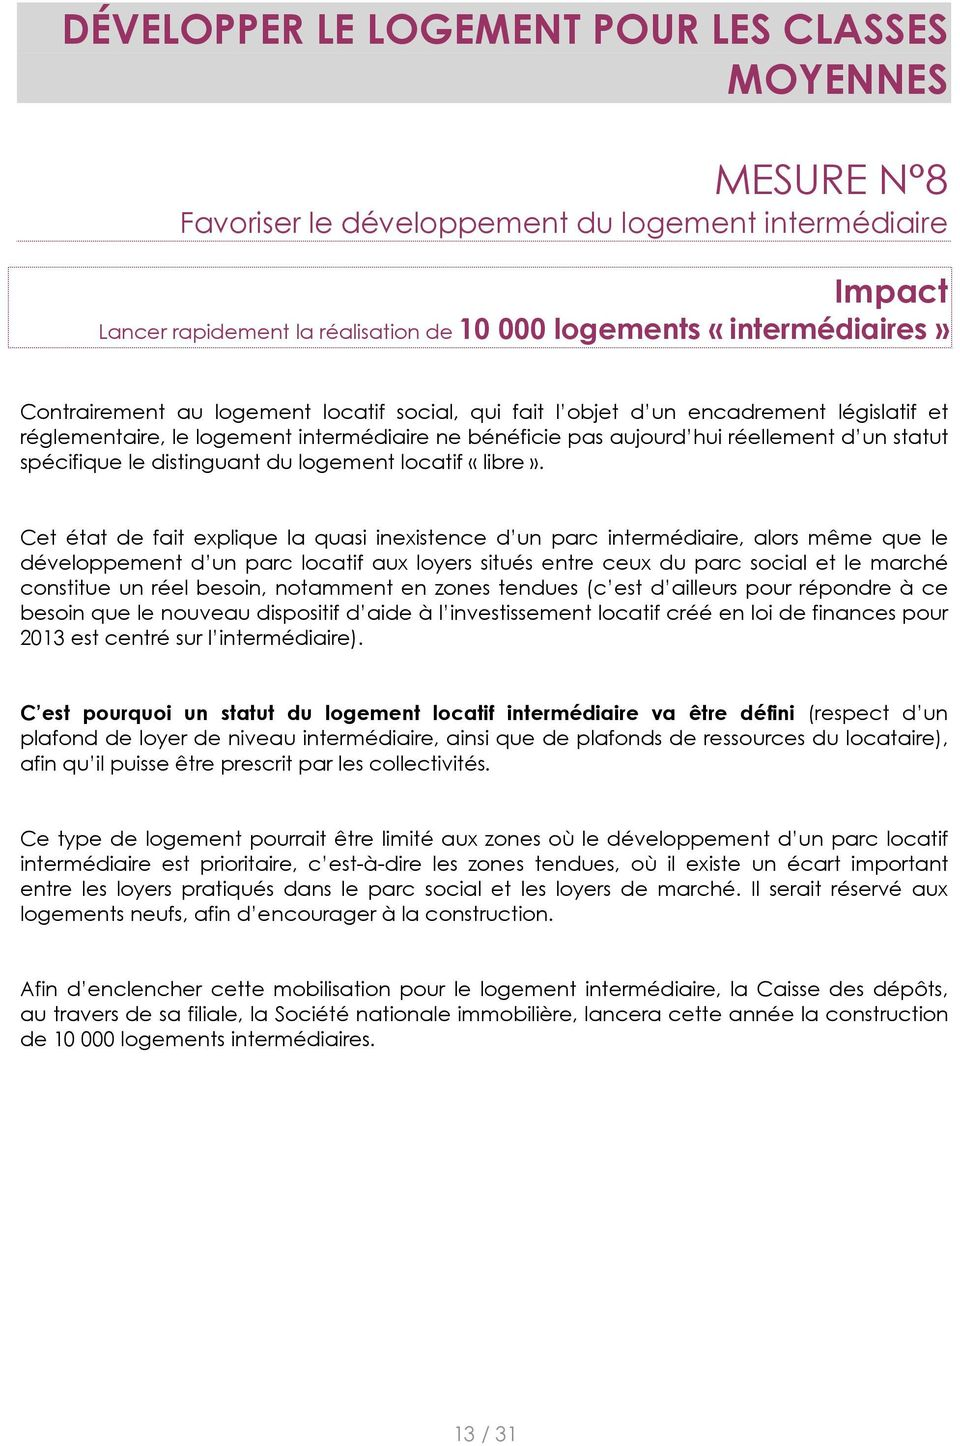 distinguant du logement locatif «libre».